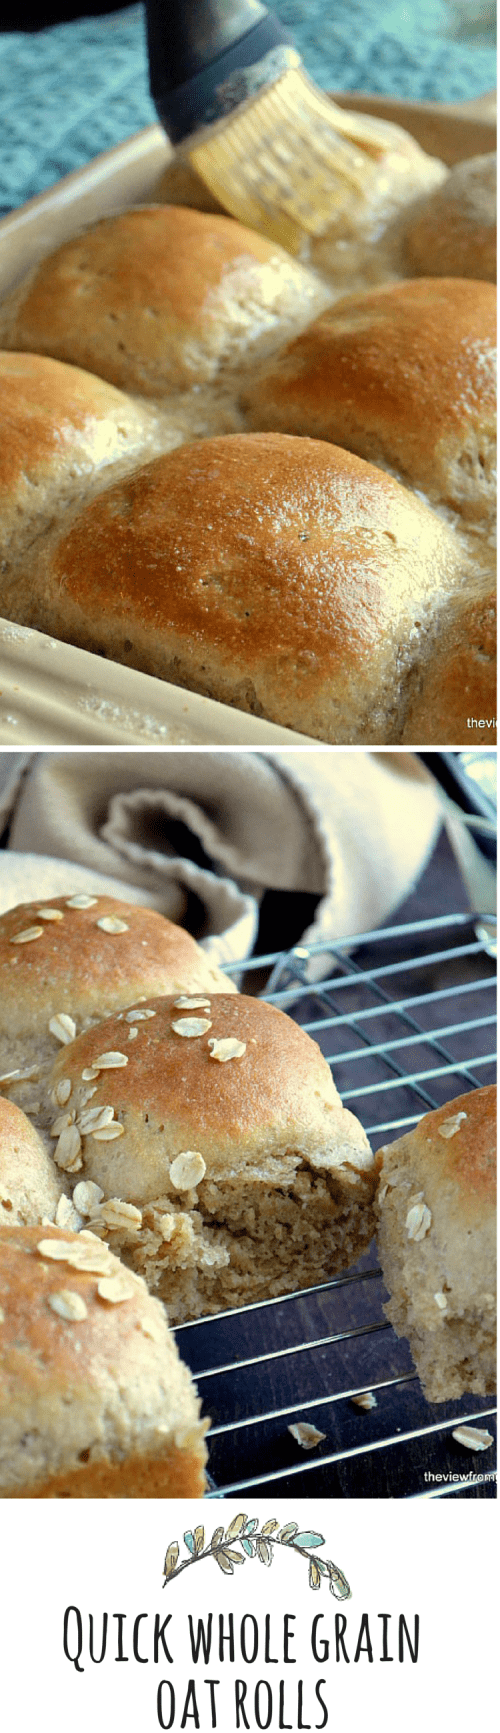 Quick Whole Grain Oat Rolls can be made, from start to finish, in about an hour ~ pinky swear! #bread #rolls #bestrolls #dinnerrolls #quickrolls #wholegrainrolls #healthyrolls #oatflour #wholewheatflour #sidedish #yeastbread